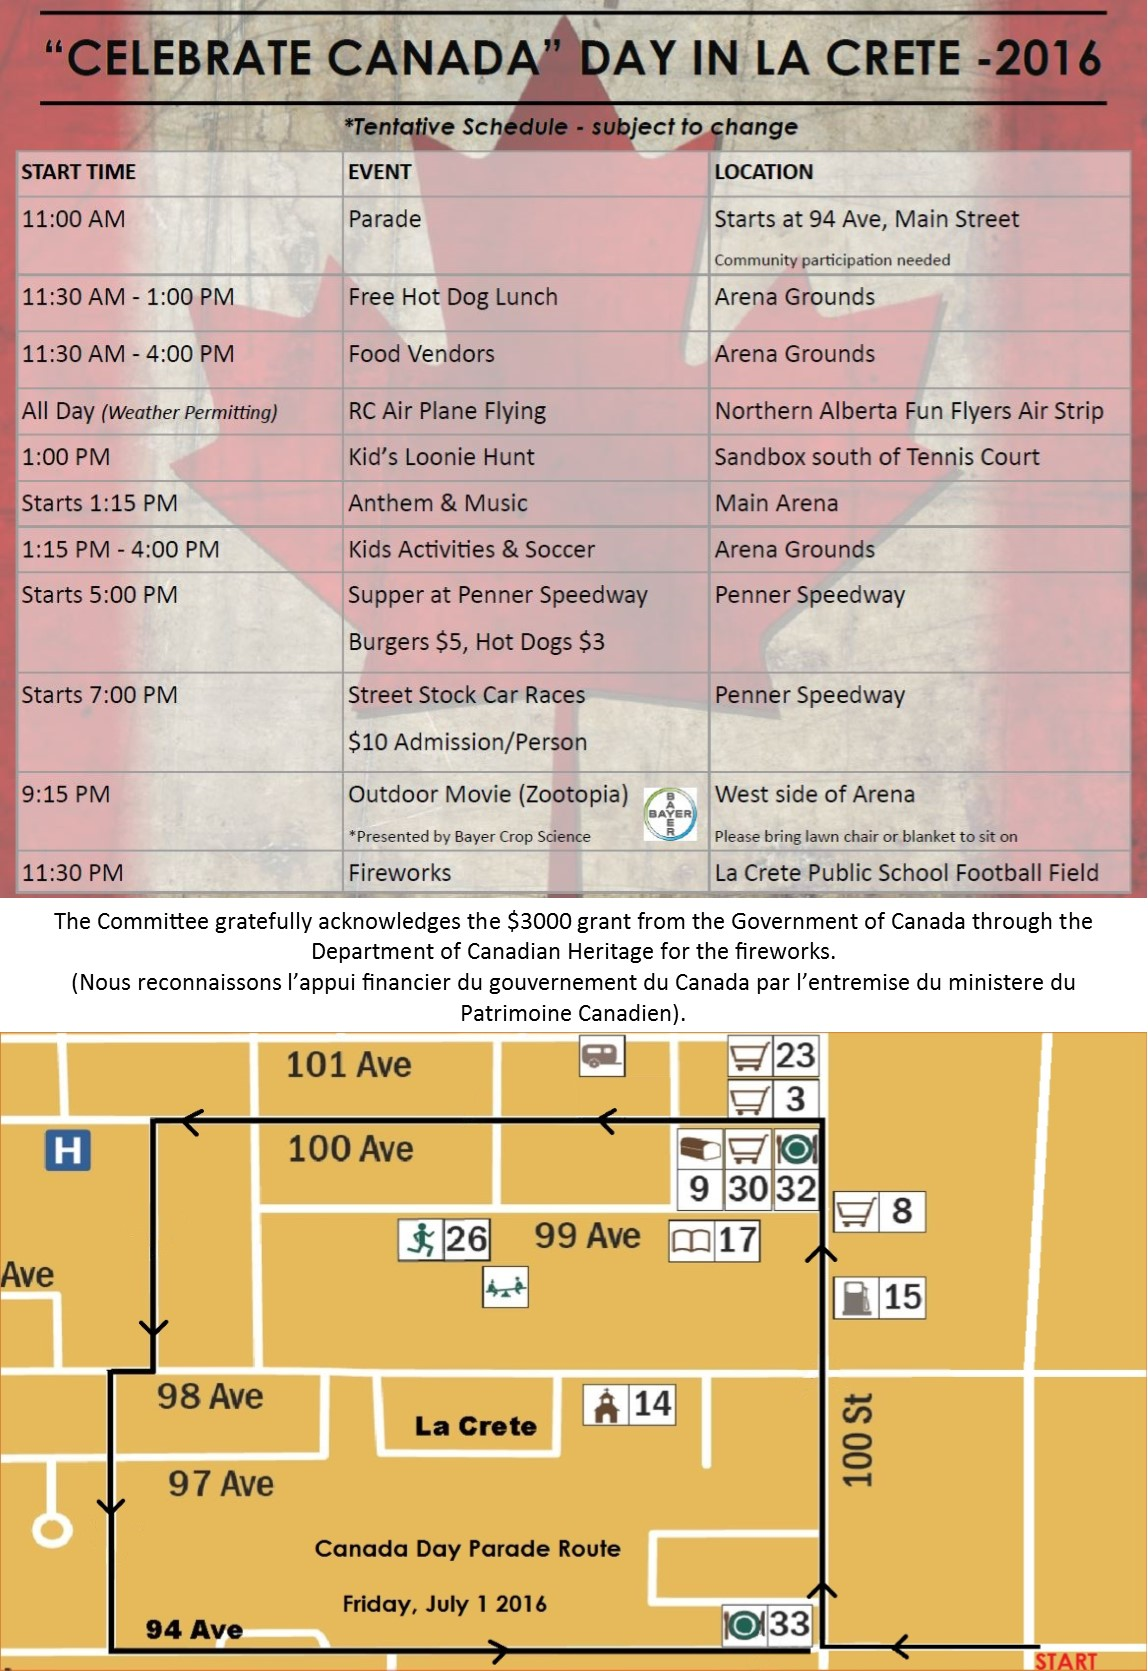 2016 Canada Day Schedule and Map with French